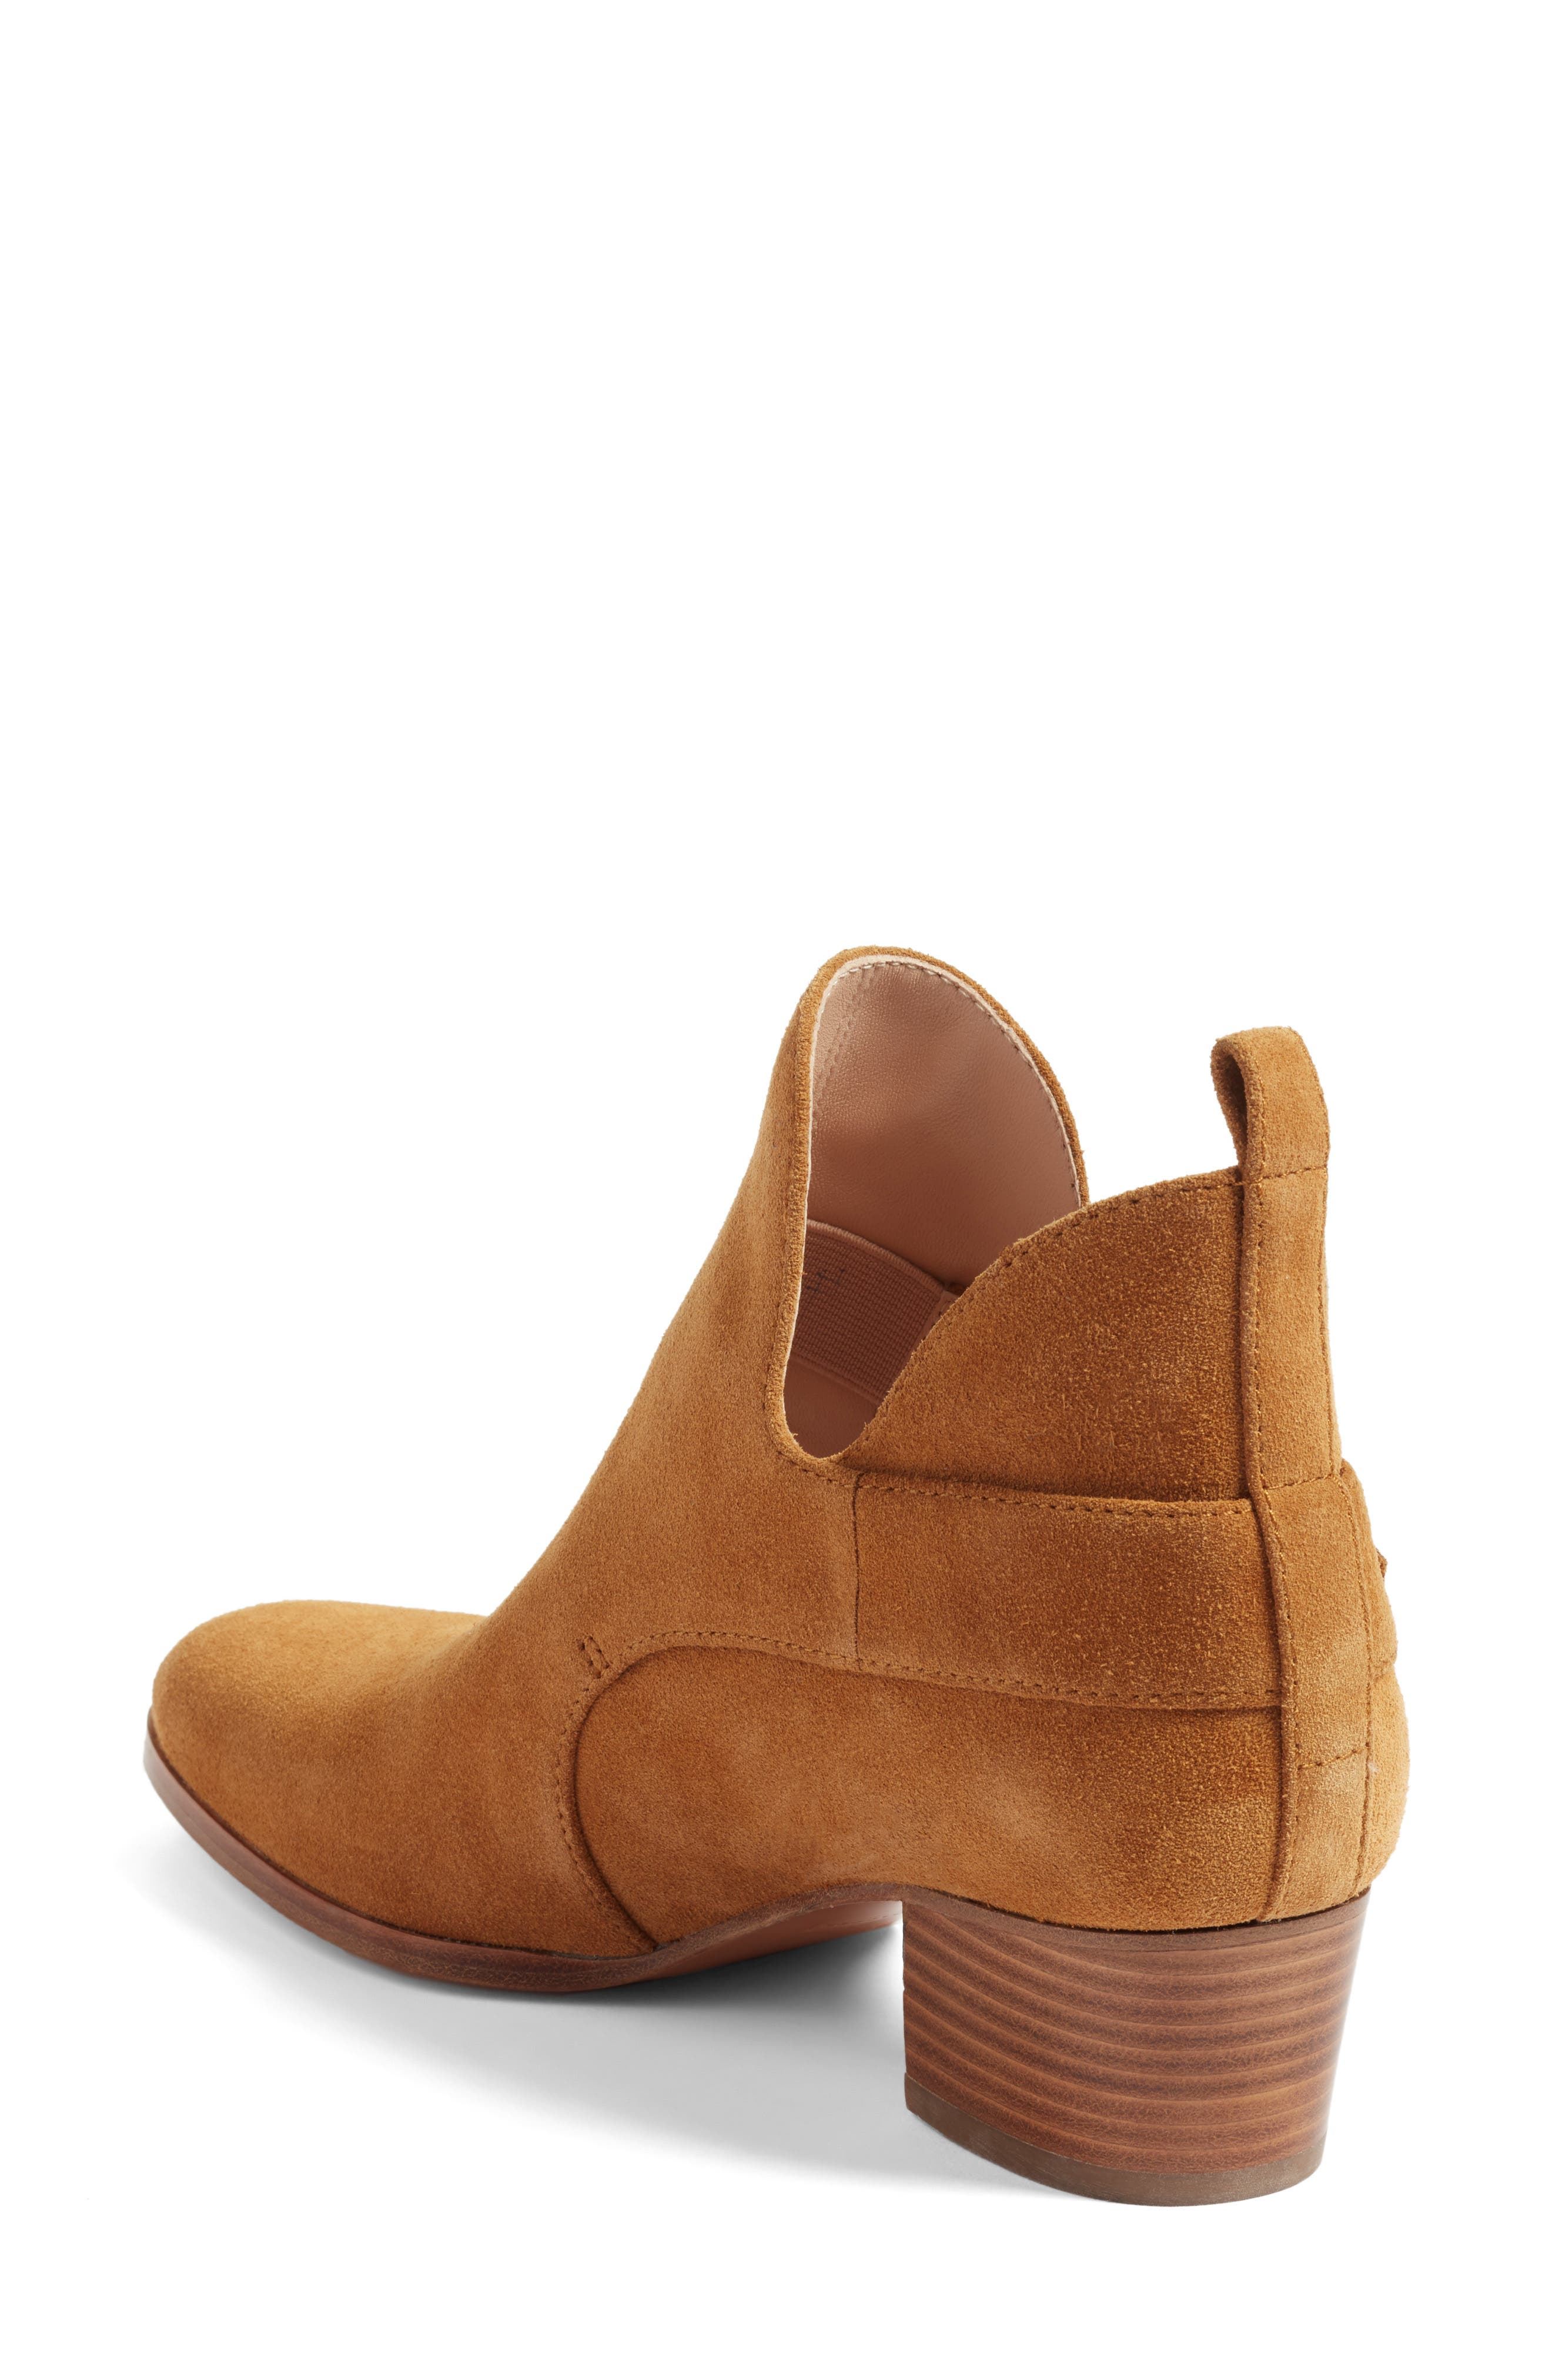 Alternate Image 2  - Marc Jacobs Ginger Interlock Bootie (Women)